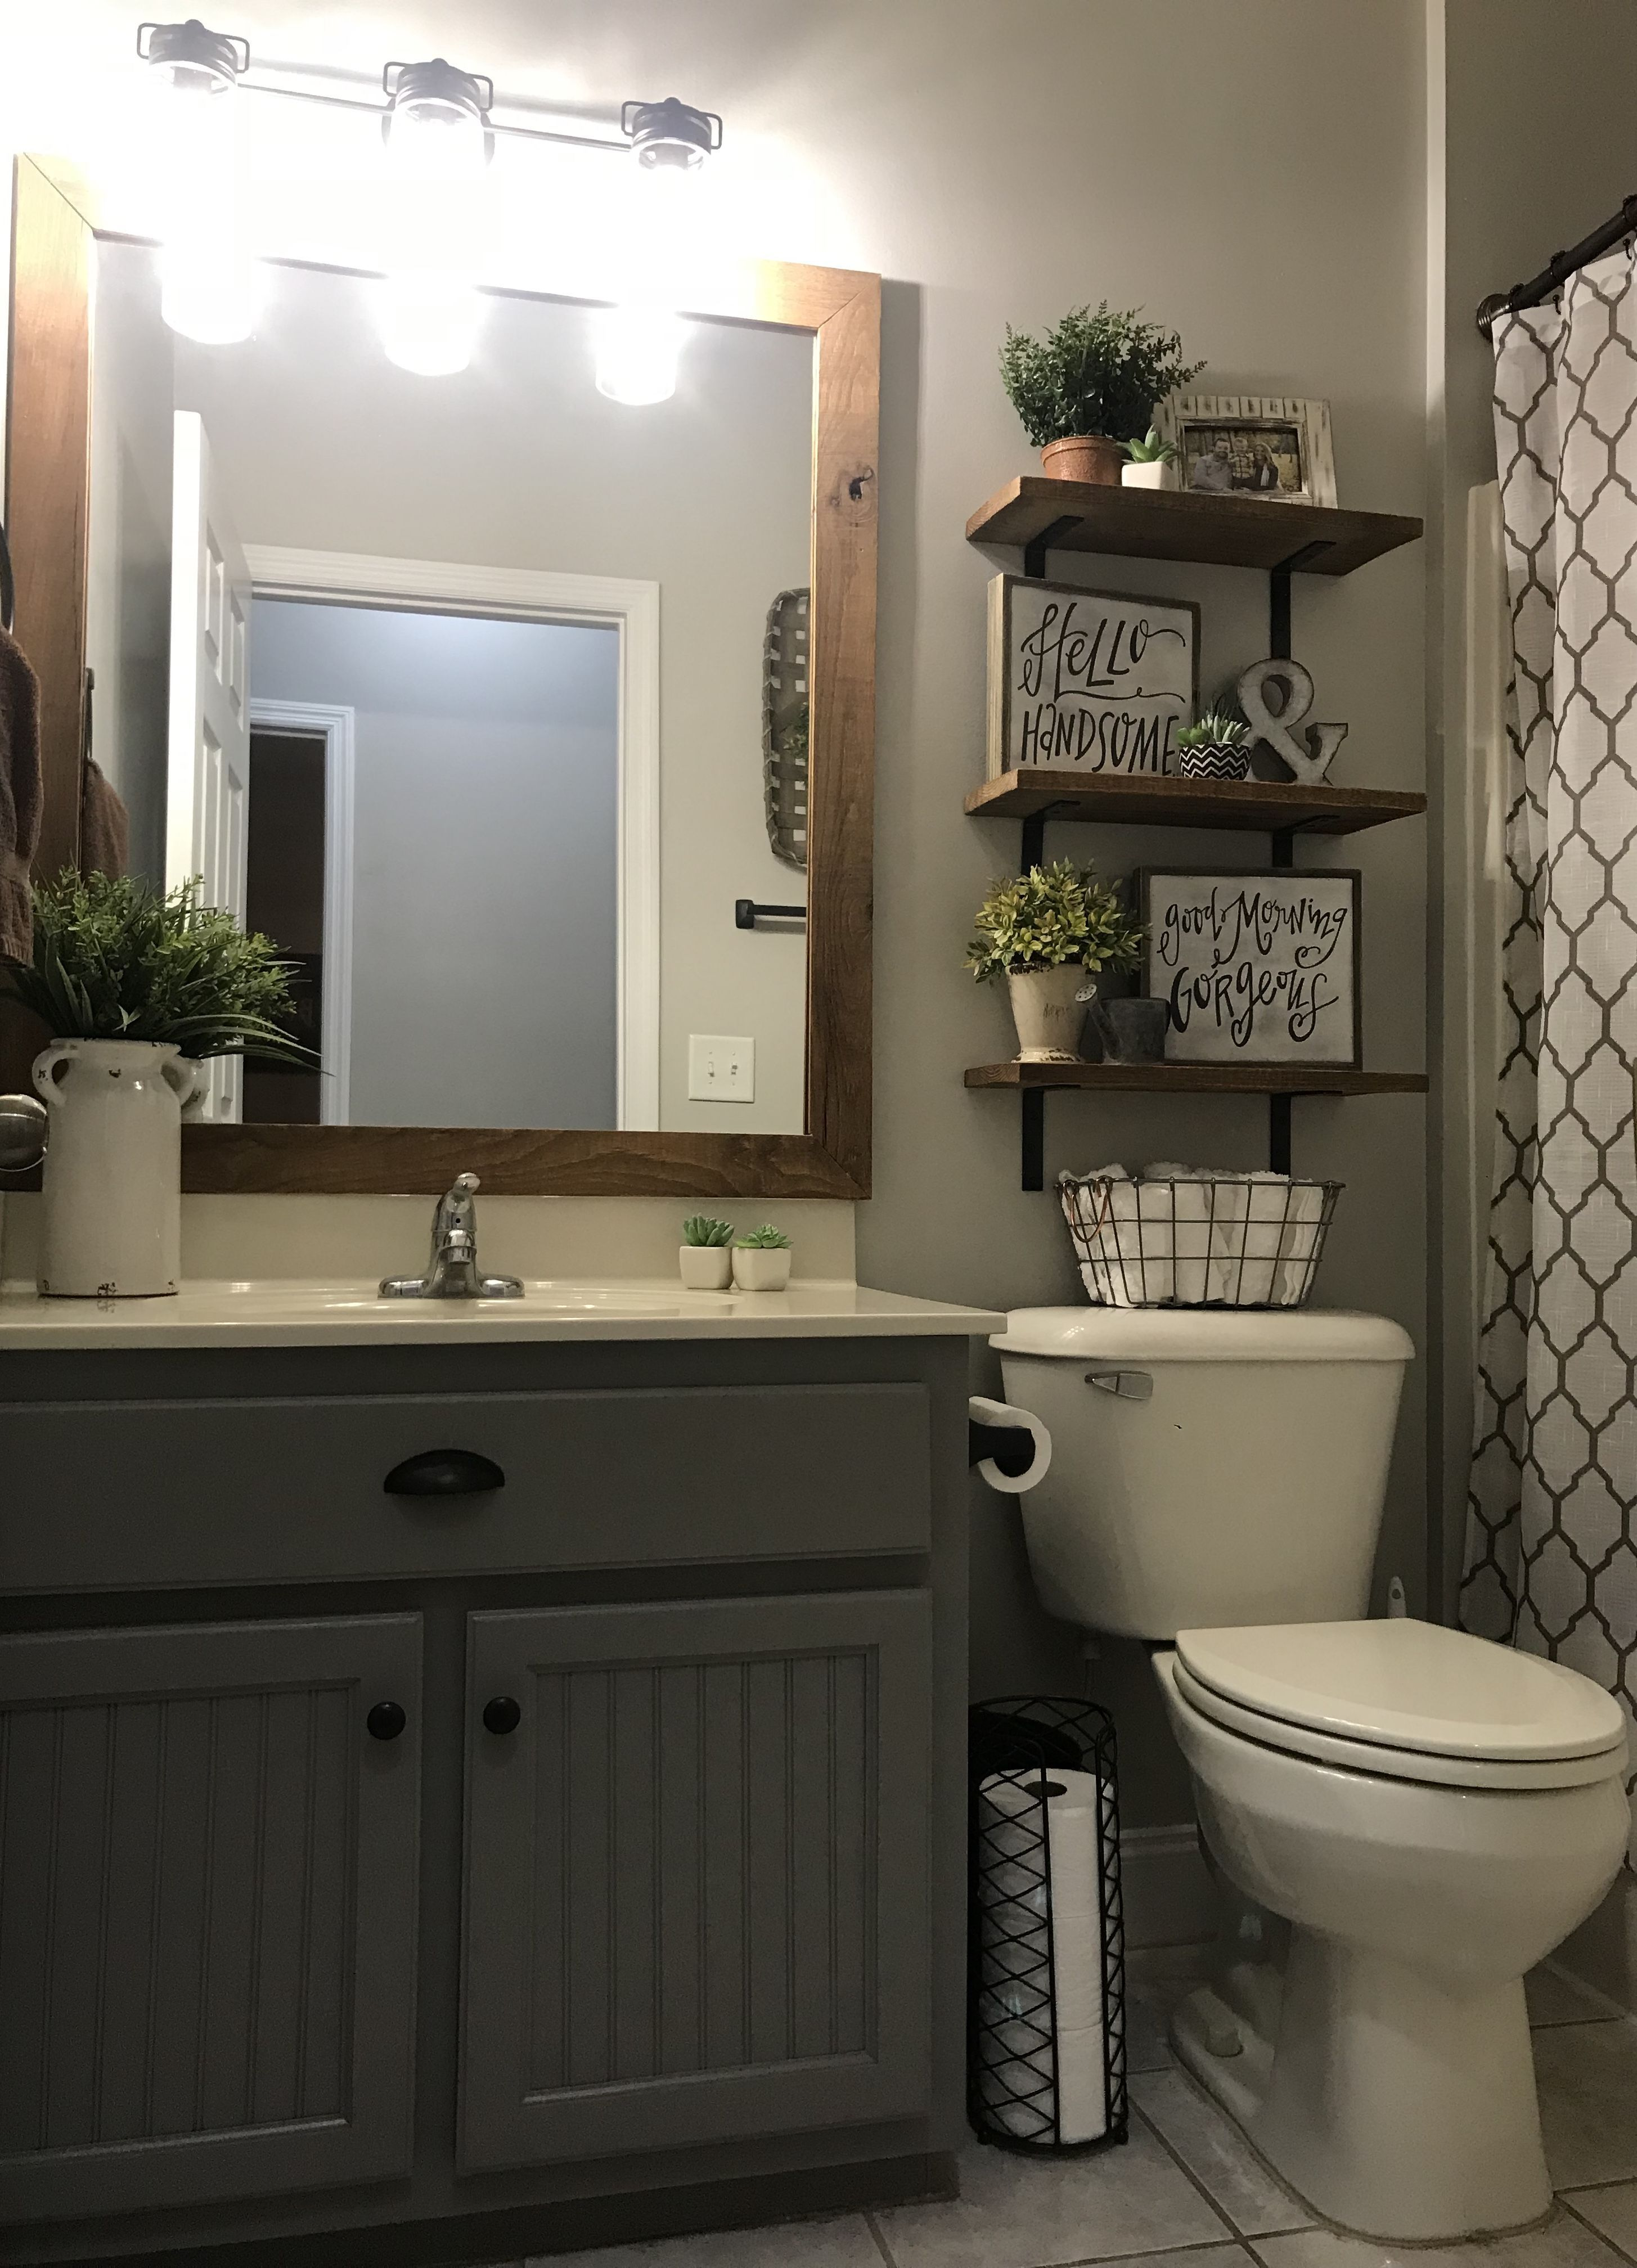 Guest bathroom idea bathroomimprovements also before and after remodel with lowes dream rh pinterest